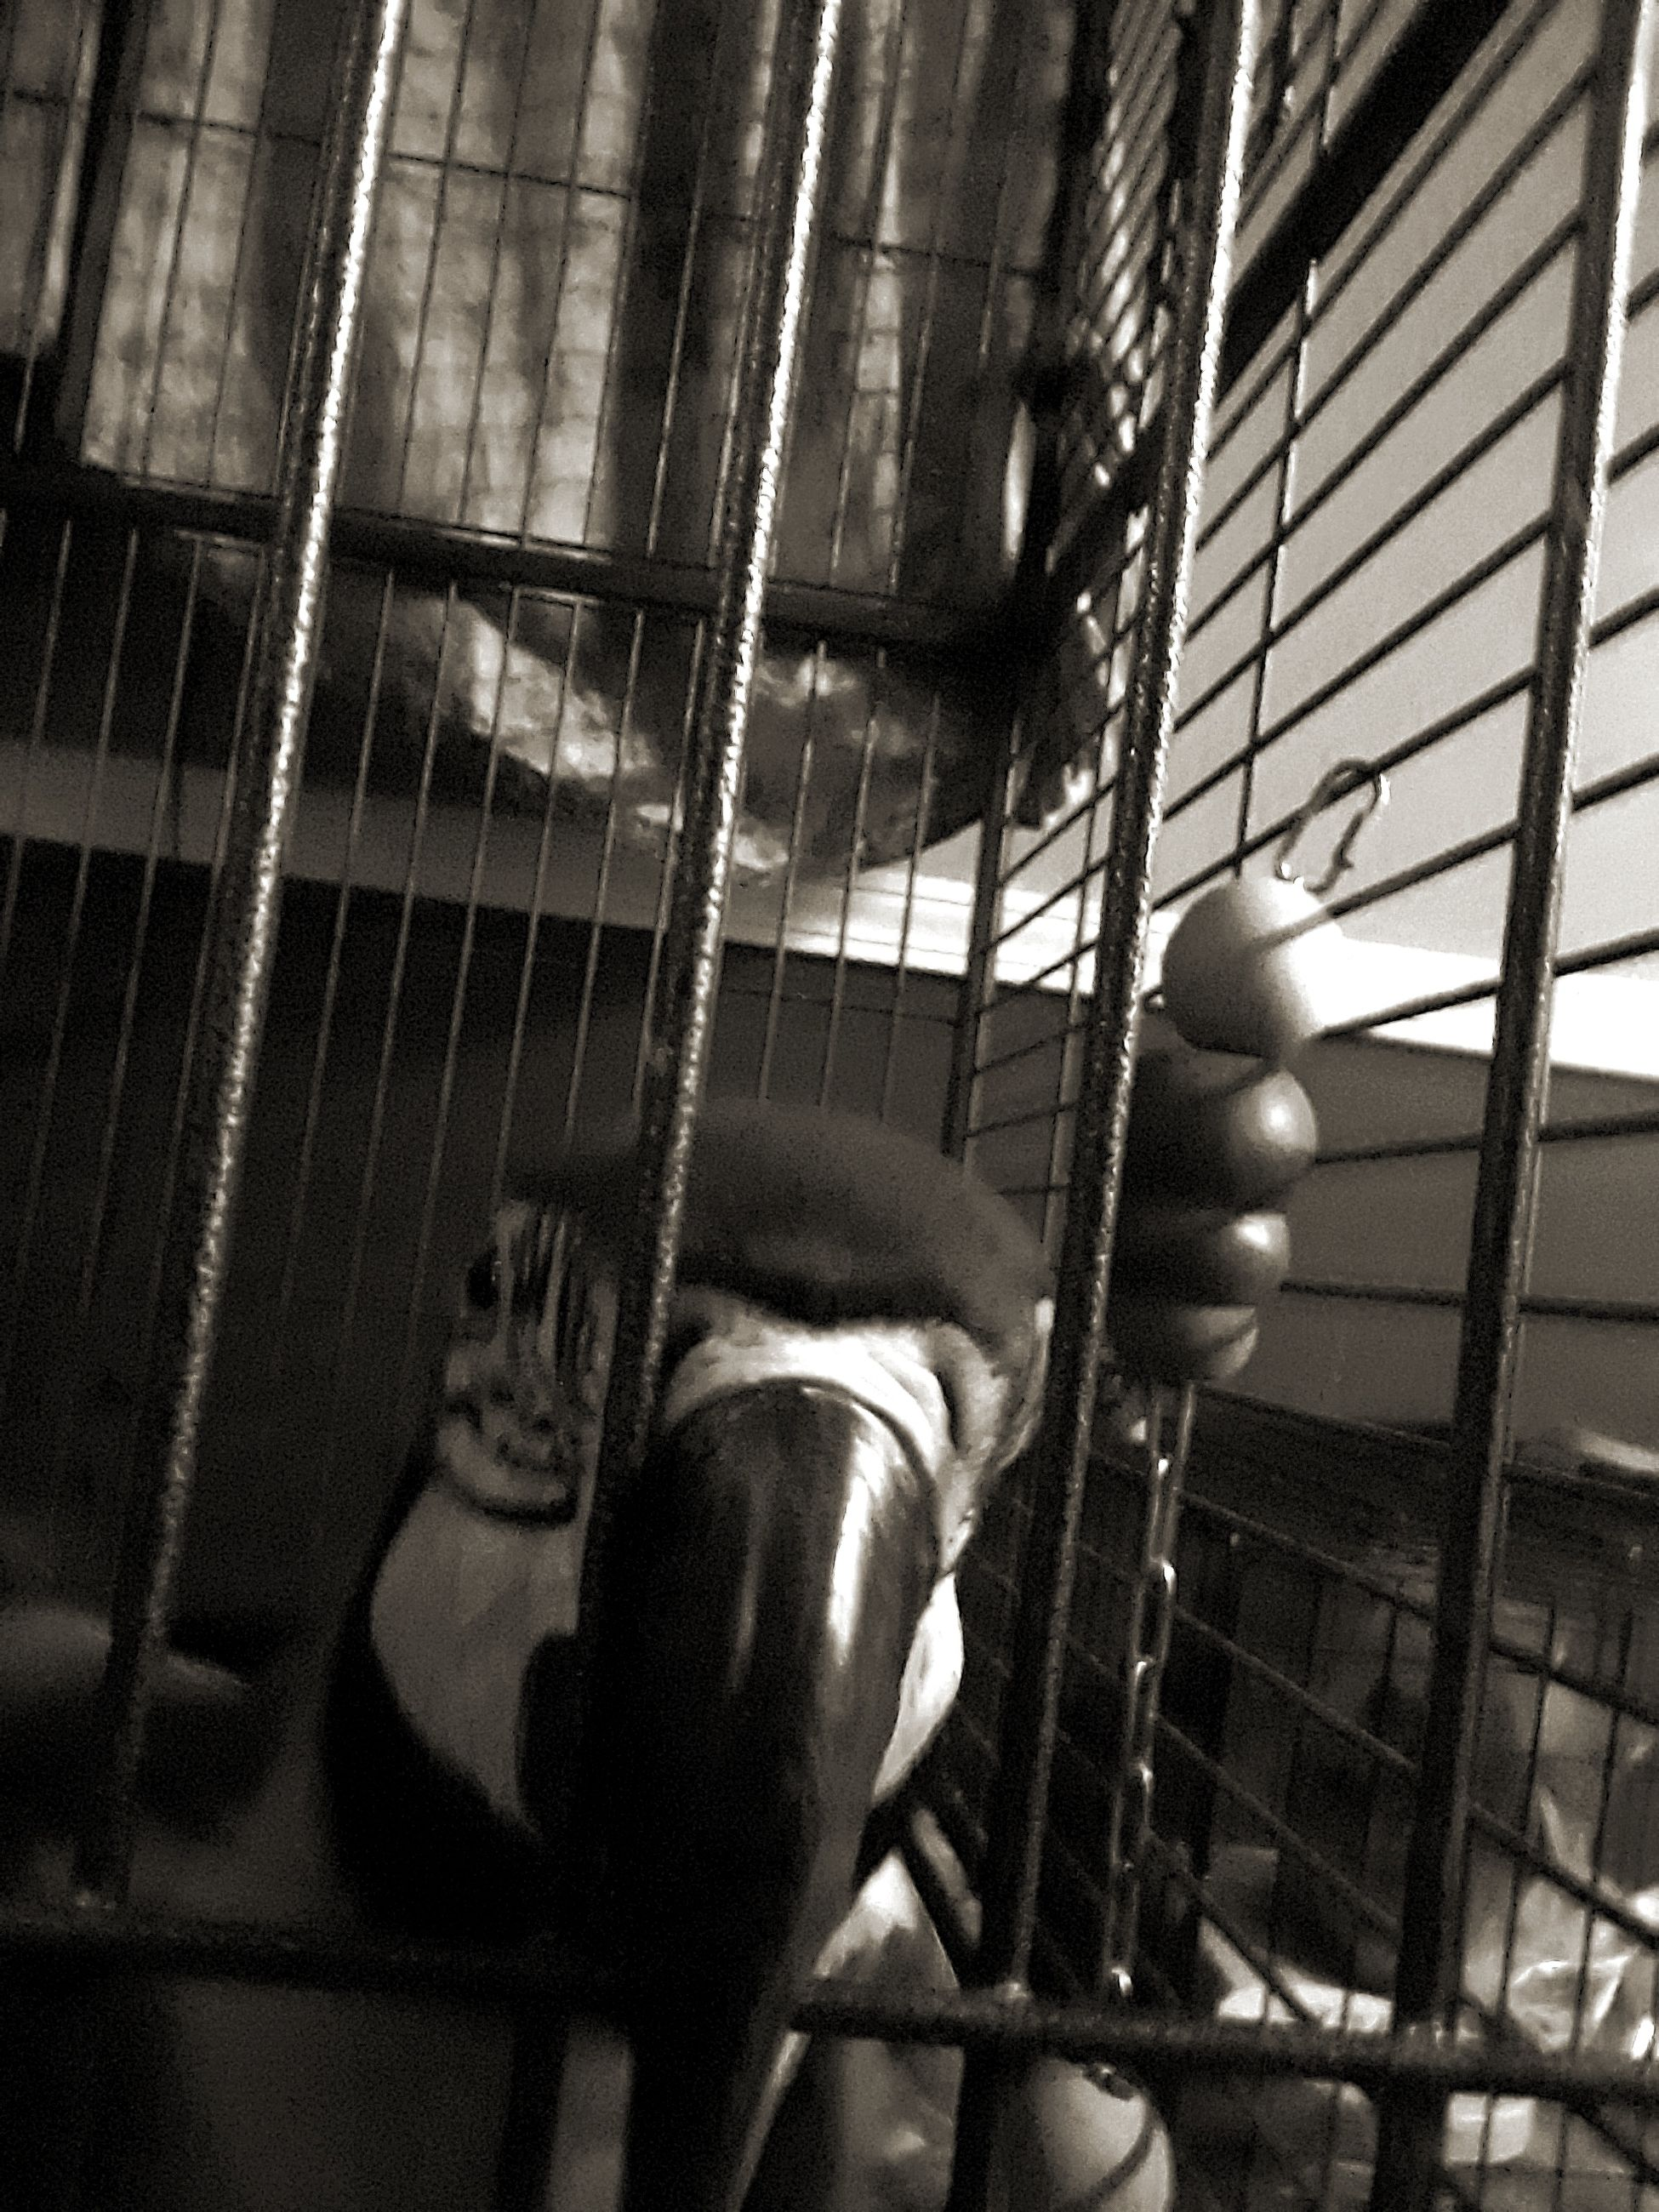 animal themes, one animal, cage, trapped, animals in captivity, indoors, hanging, no people, pets, mammal, bird, architecture, day, close-up